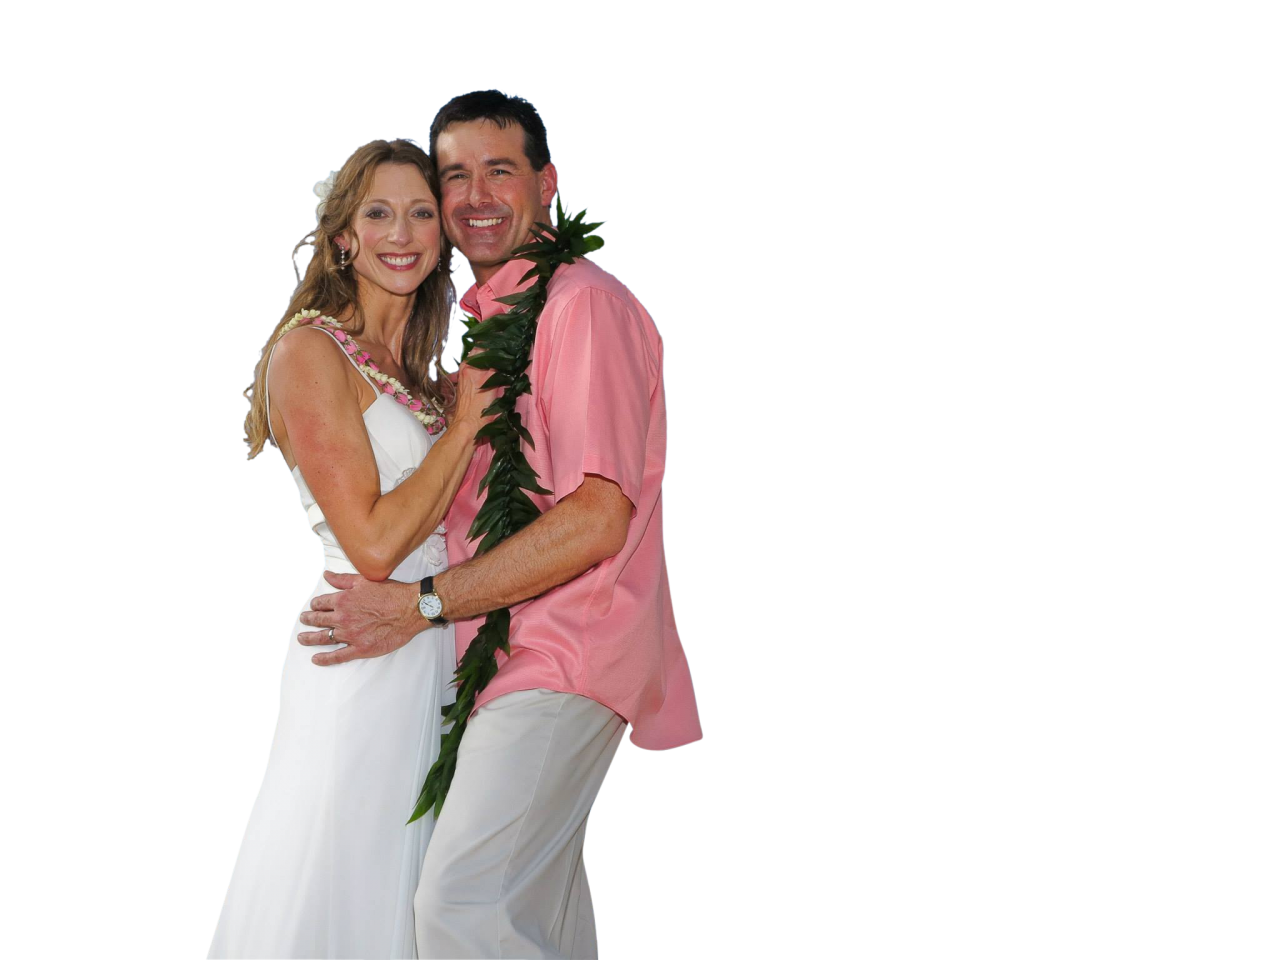 Couple PNG Image